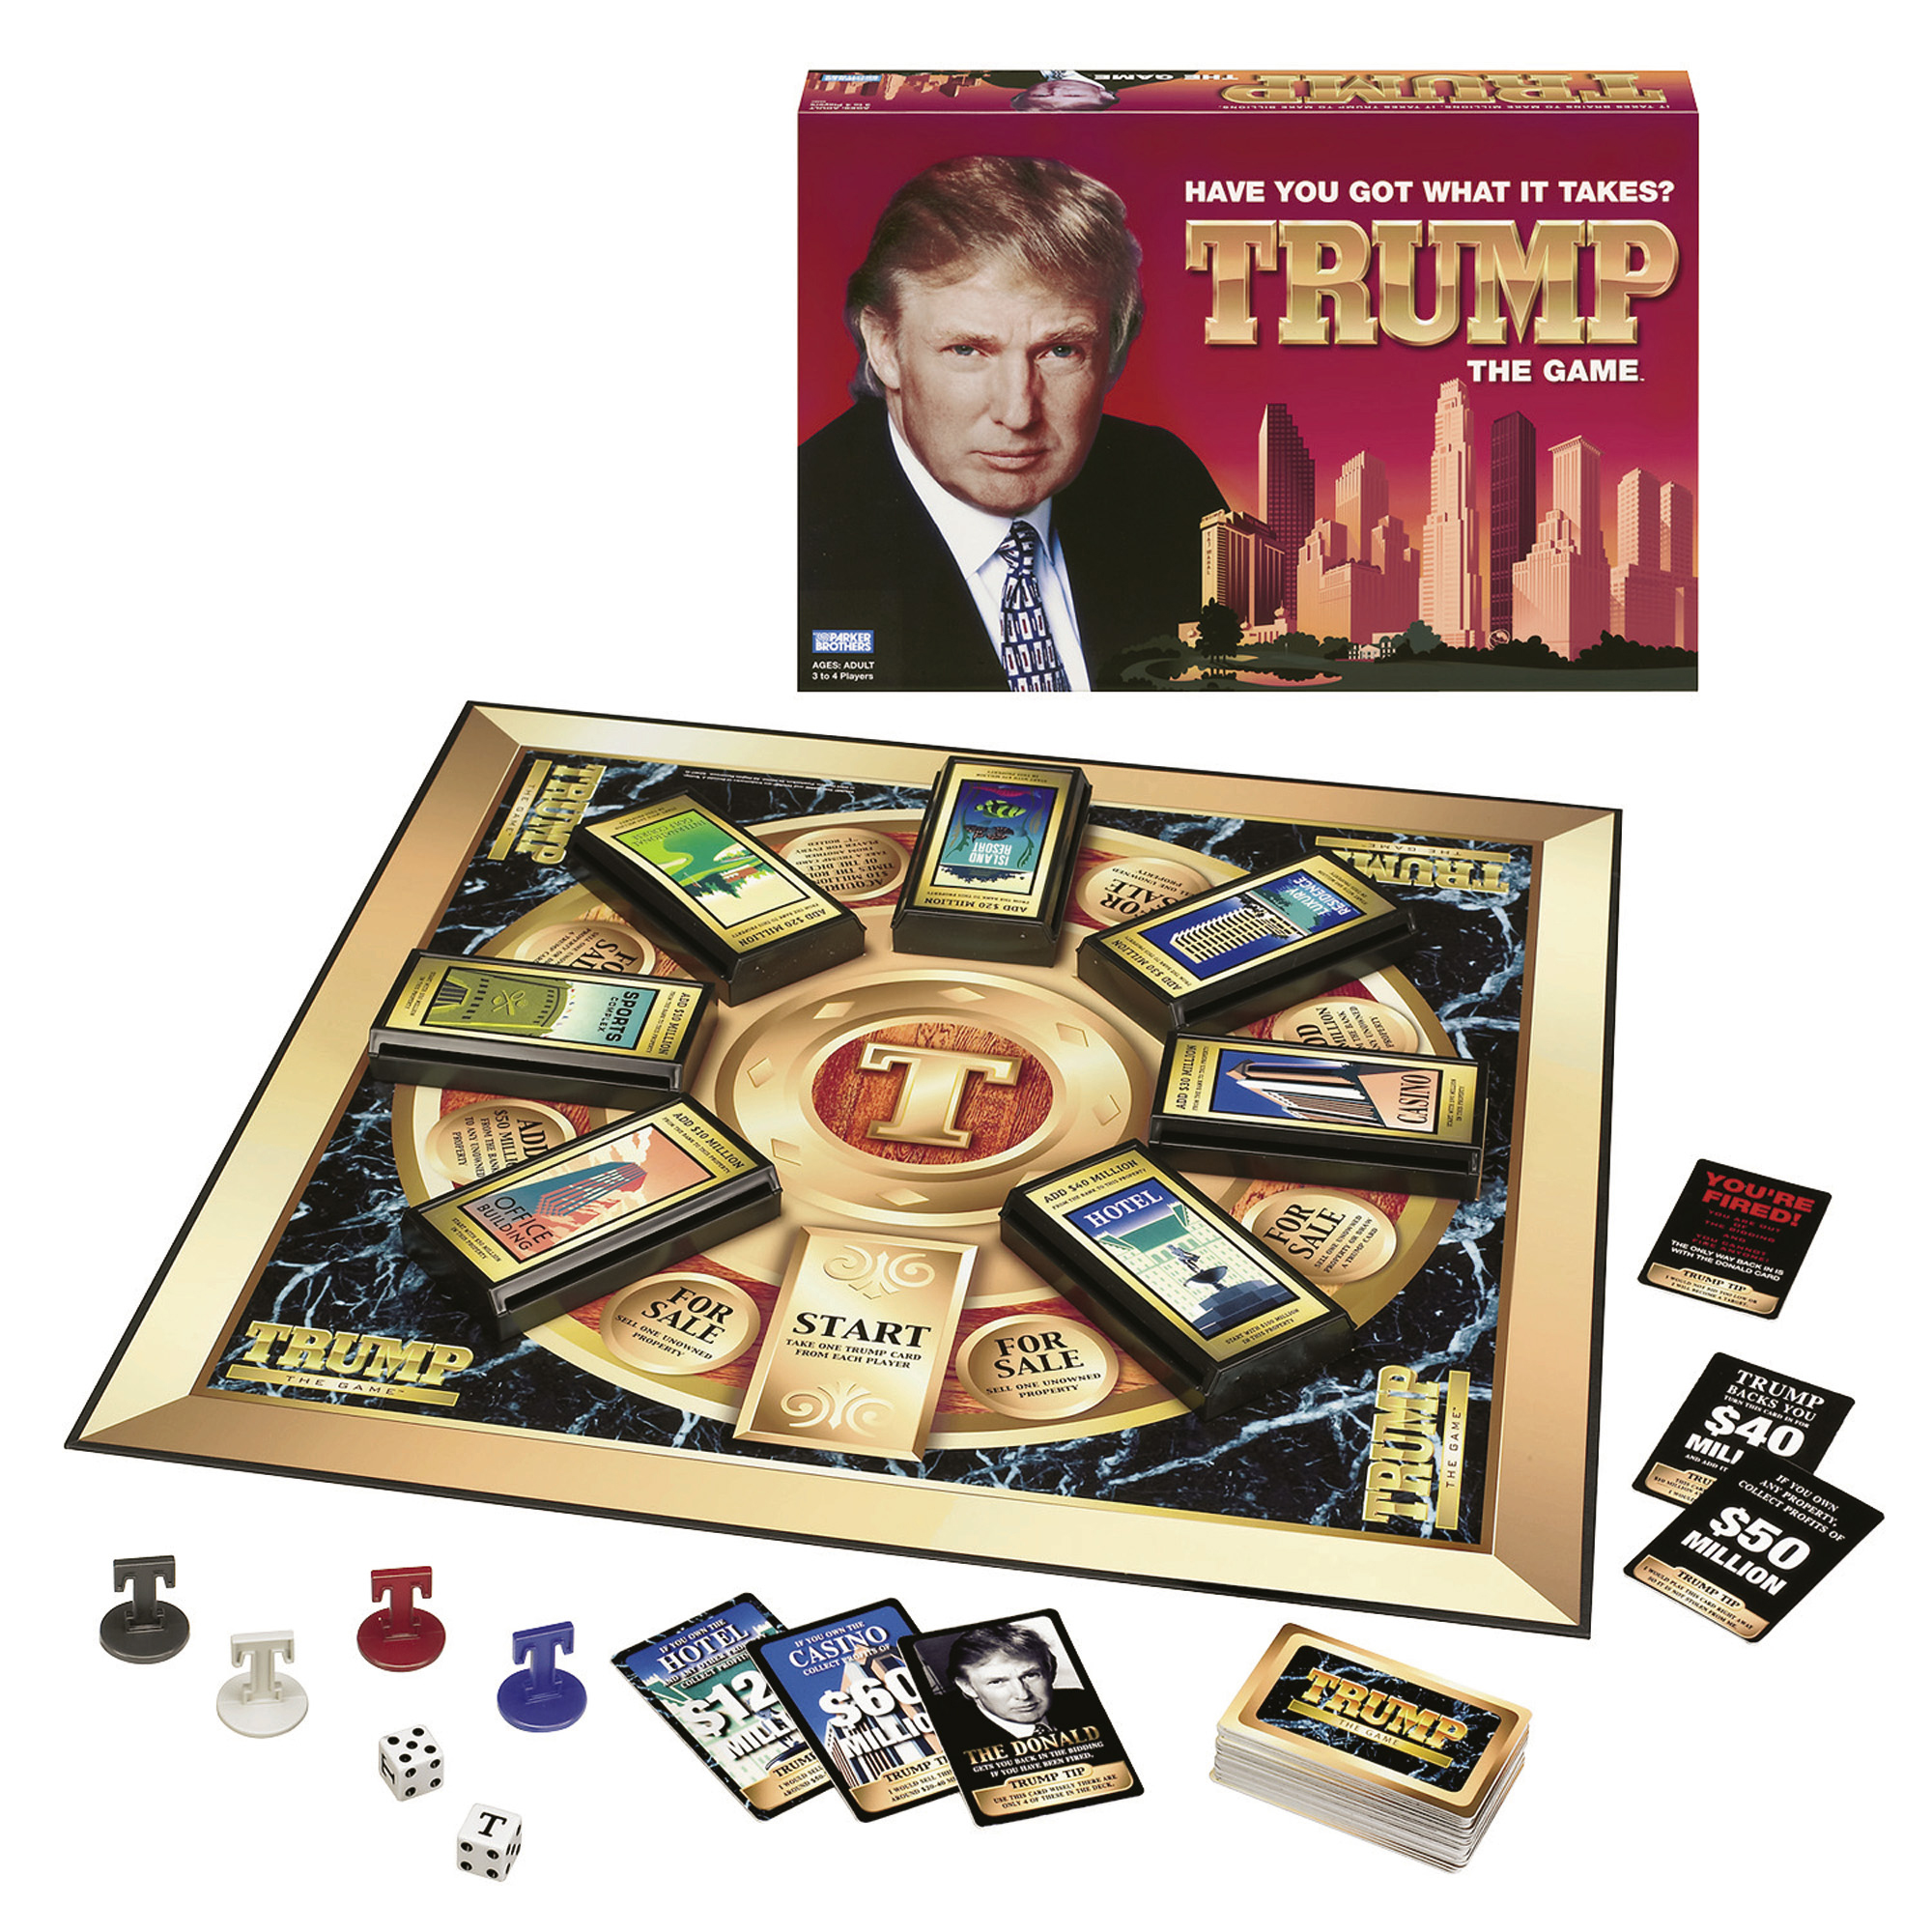 This is a Hasbro Inc., undated handout photo showing the new board game Trump. Donald Trump is lending his name to a new board game marketed by Pawtucket-based Hasbro Inc., the nation's second largest toymaker. It's on sale now and retails for about $24.99, according to Hasbro. (AP Photo/Hasbro Inc.)